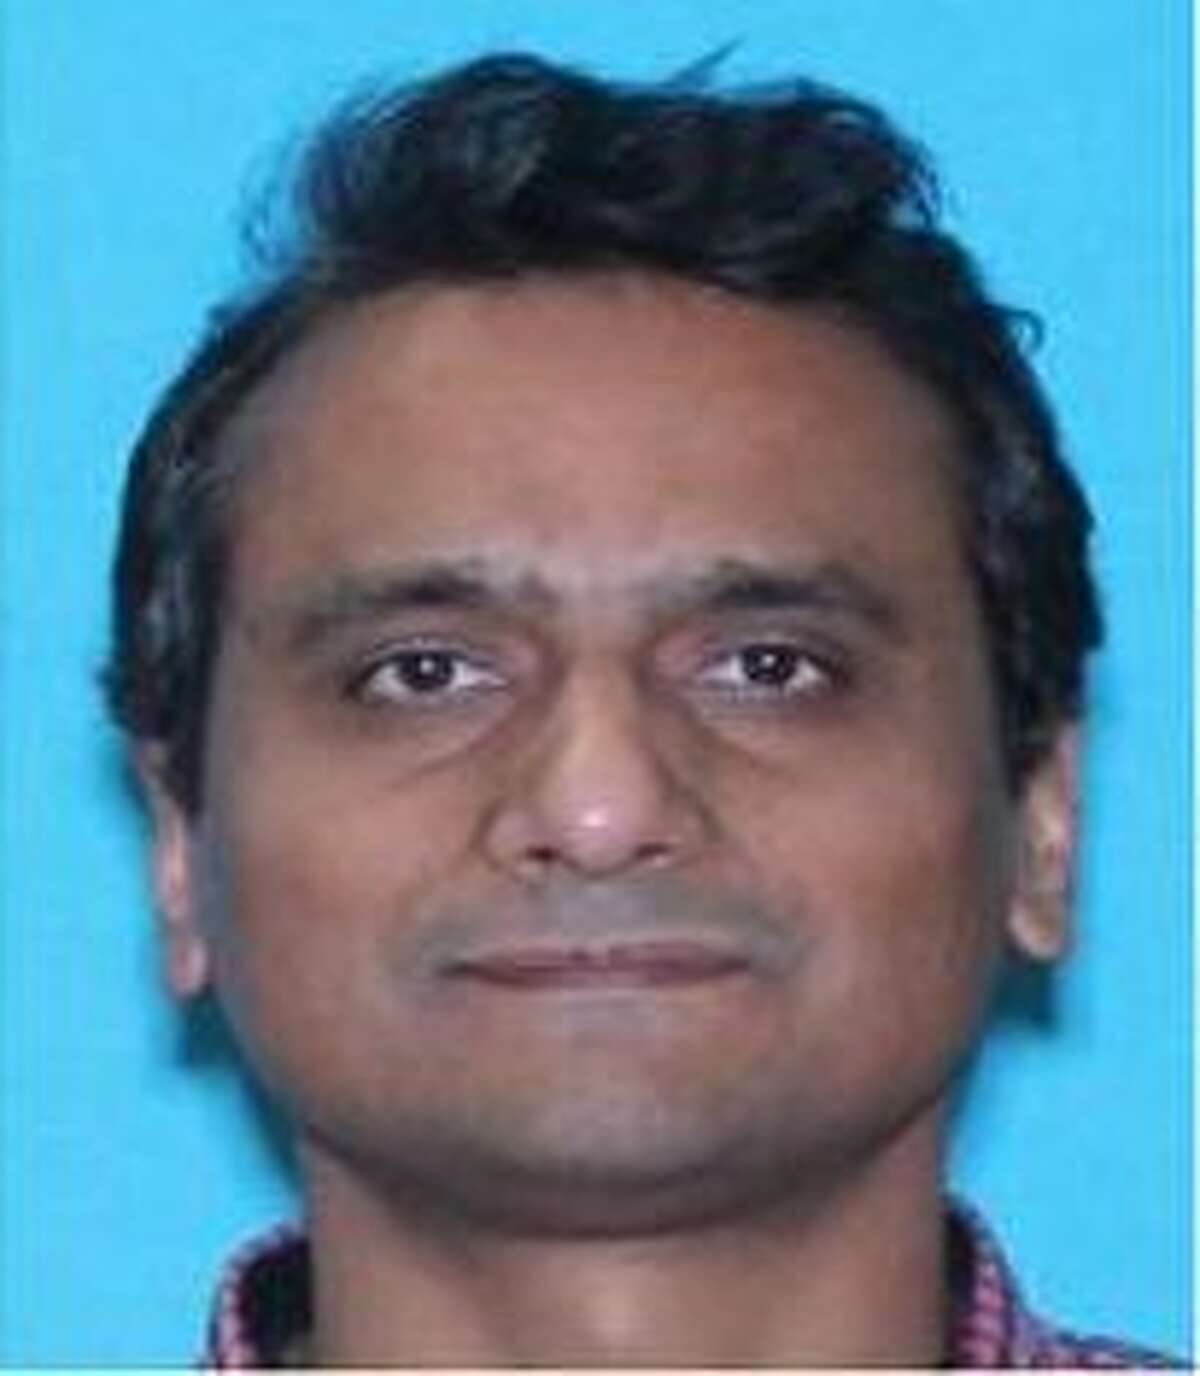 The Fort Bend County Sheriff's Office is looking for a man who hasn't been seen since he left Tuesday evening to meet a potential buyer for his car. Altaf Malik left his home in the Richmond area to meet the car buyer somewhere in the Houston area.